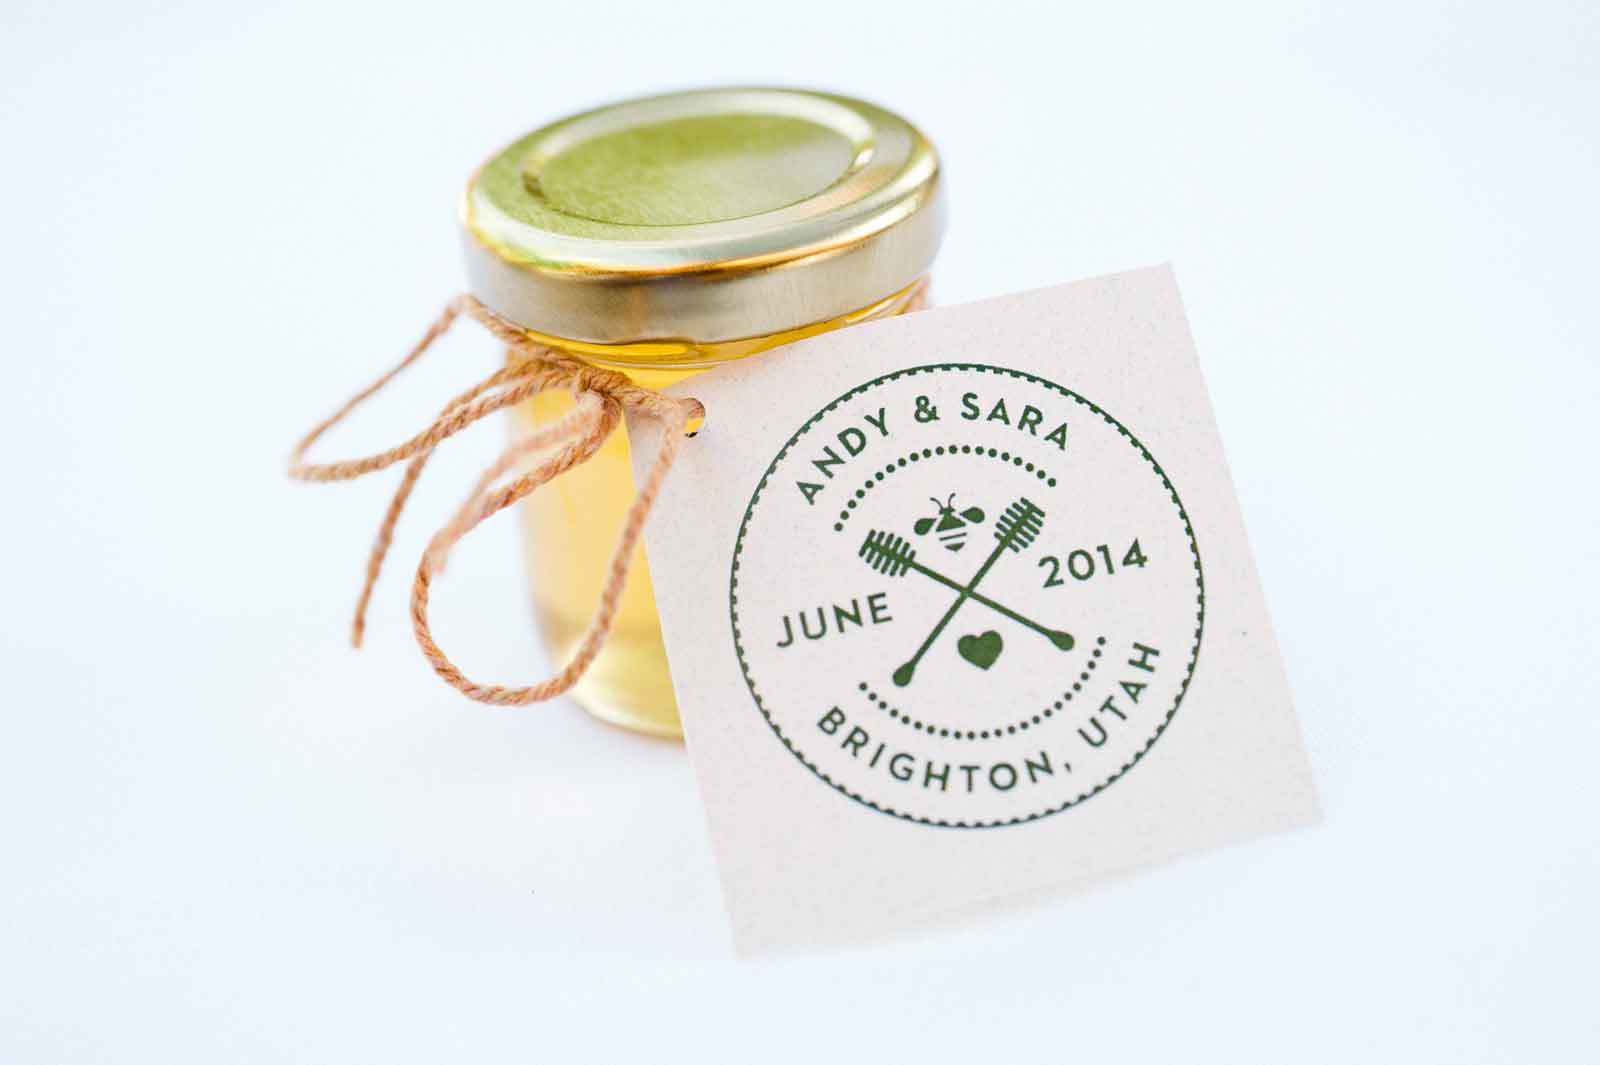 Homemade DIY Honey Jar Wedding Favor Ideas that are inspired!